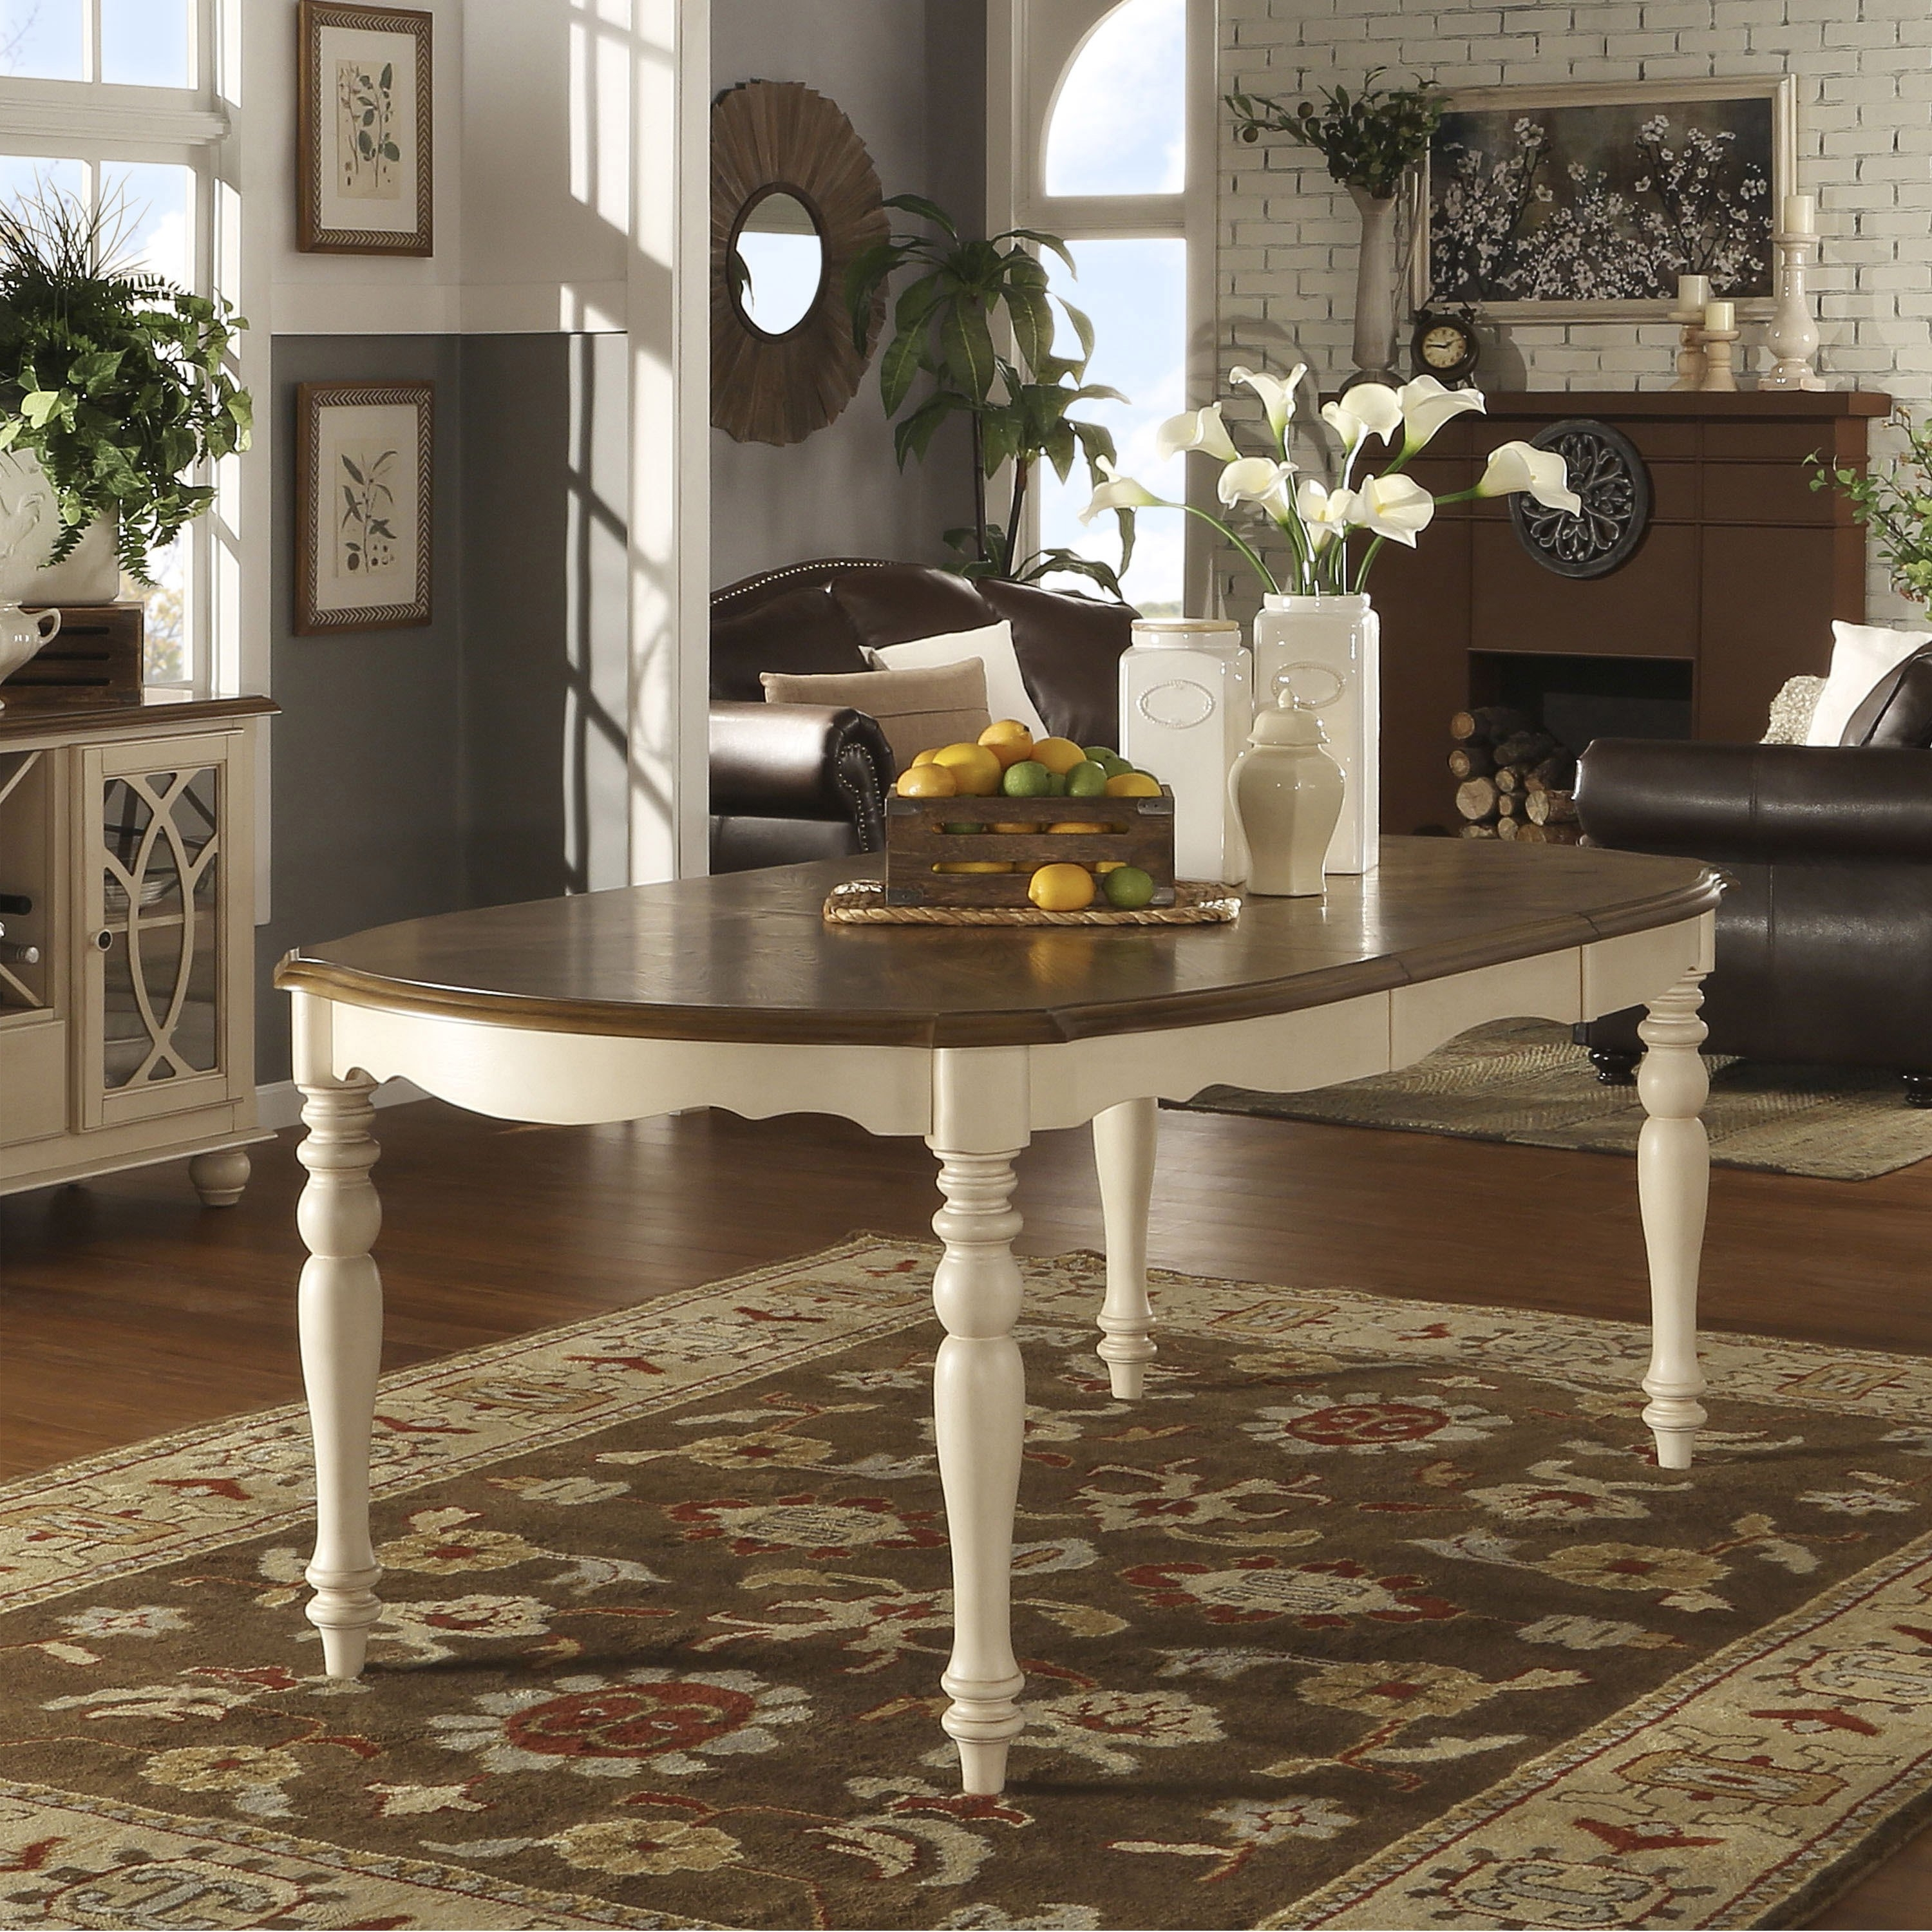 Extending Dining Room Sets - Justicearea - with regard to Well-known Norwood 9 Piece Rectangular Extension Dining Sets With Uph Side Chairs